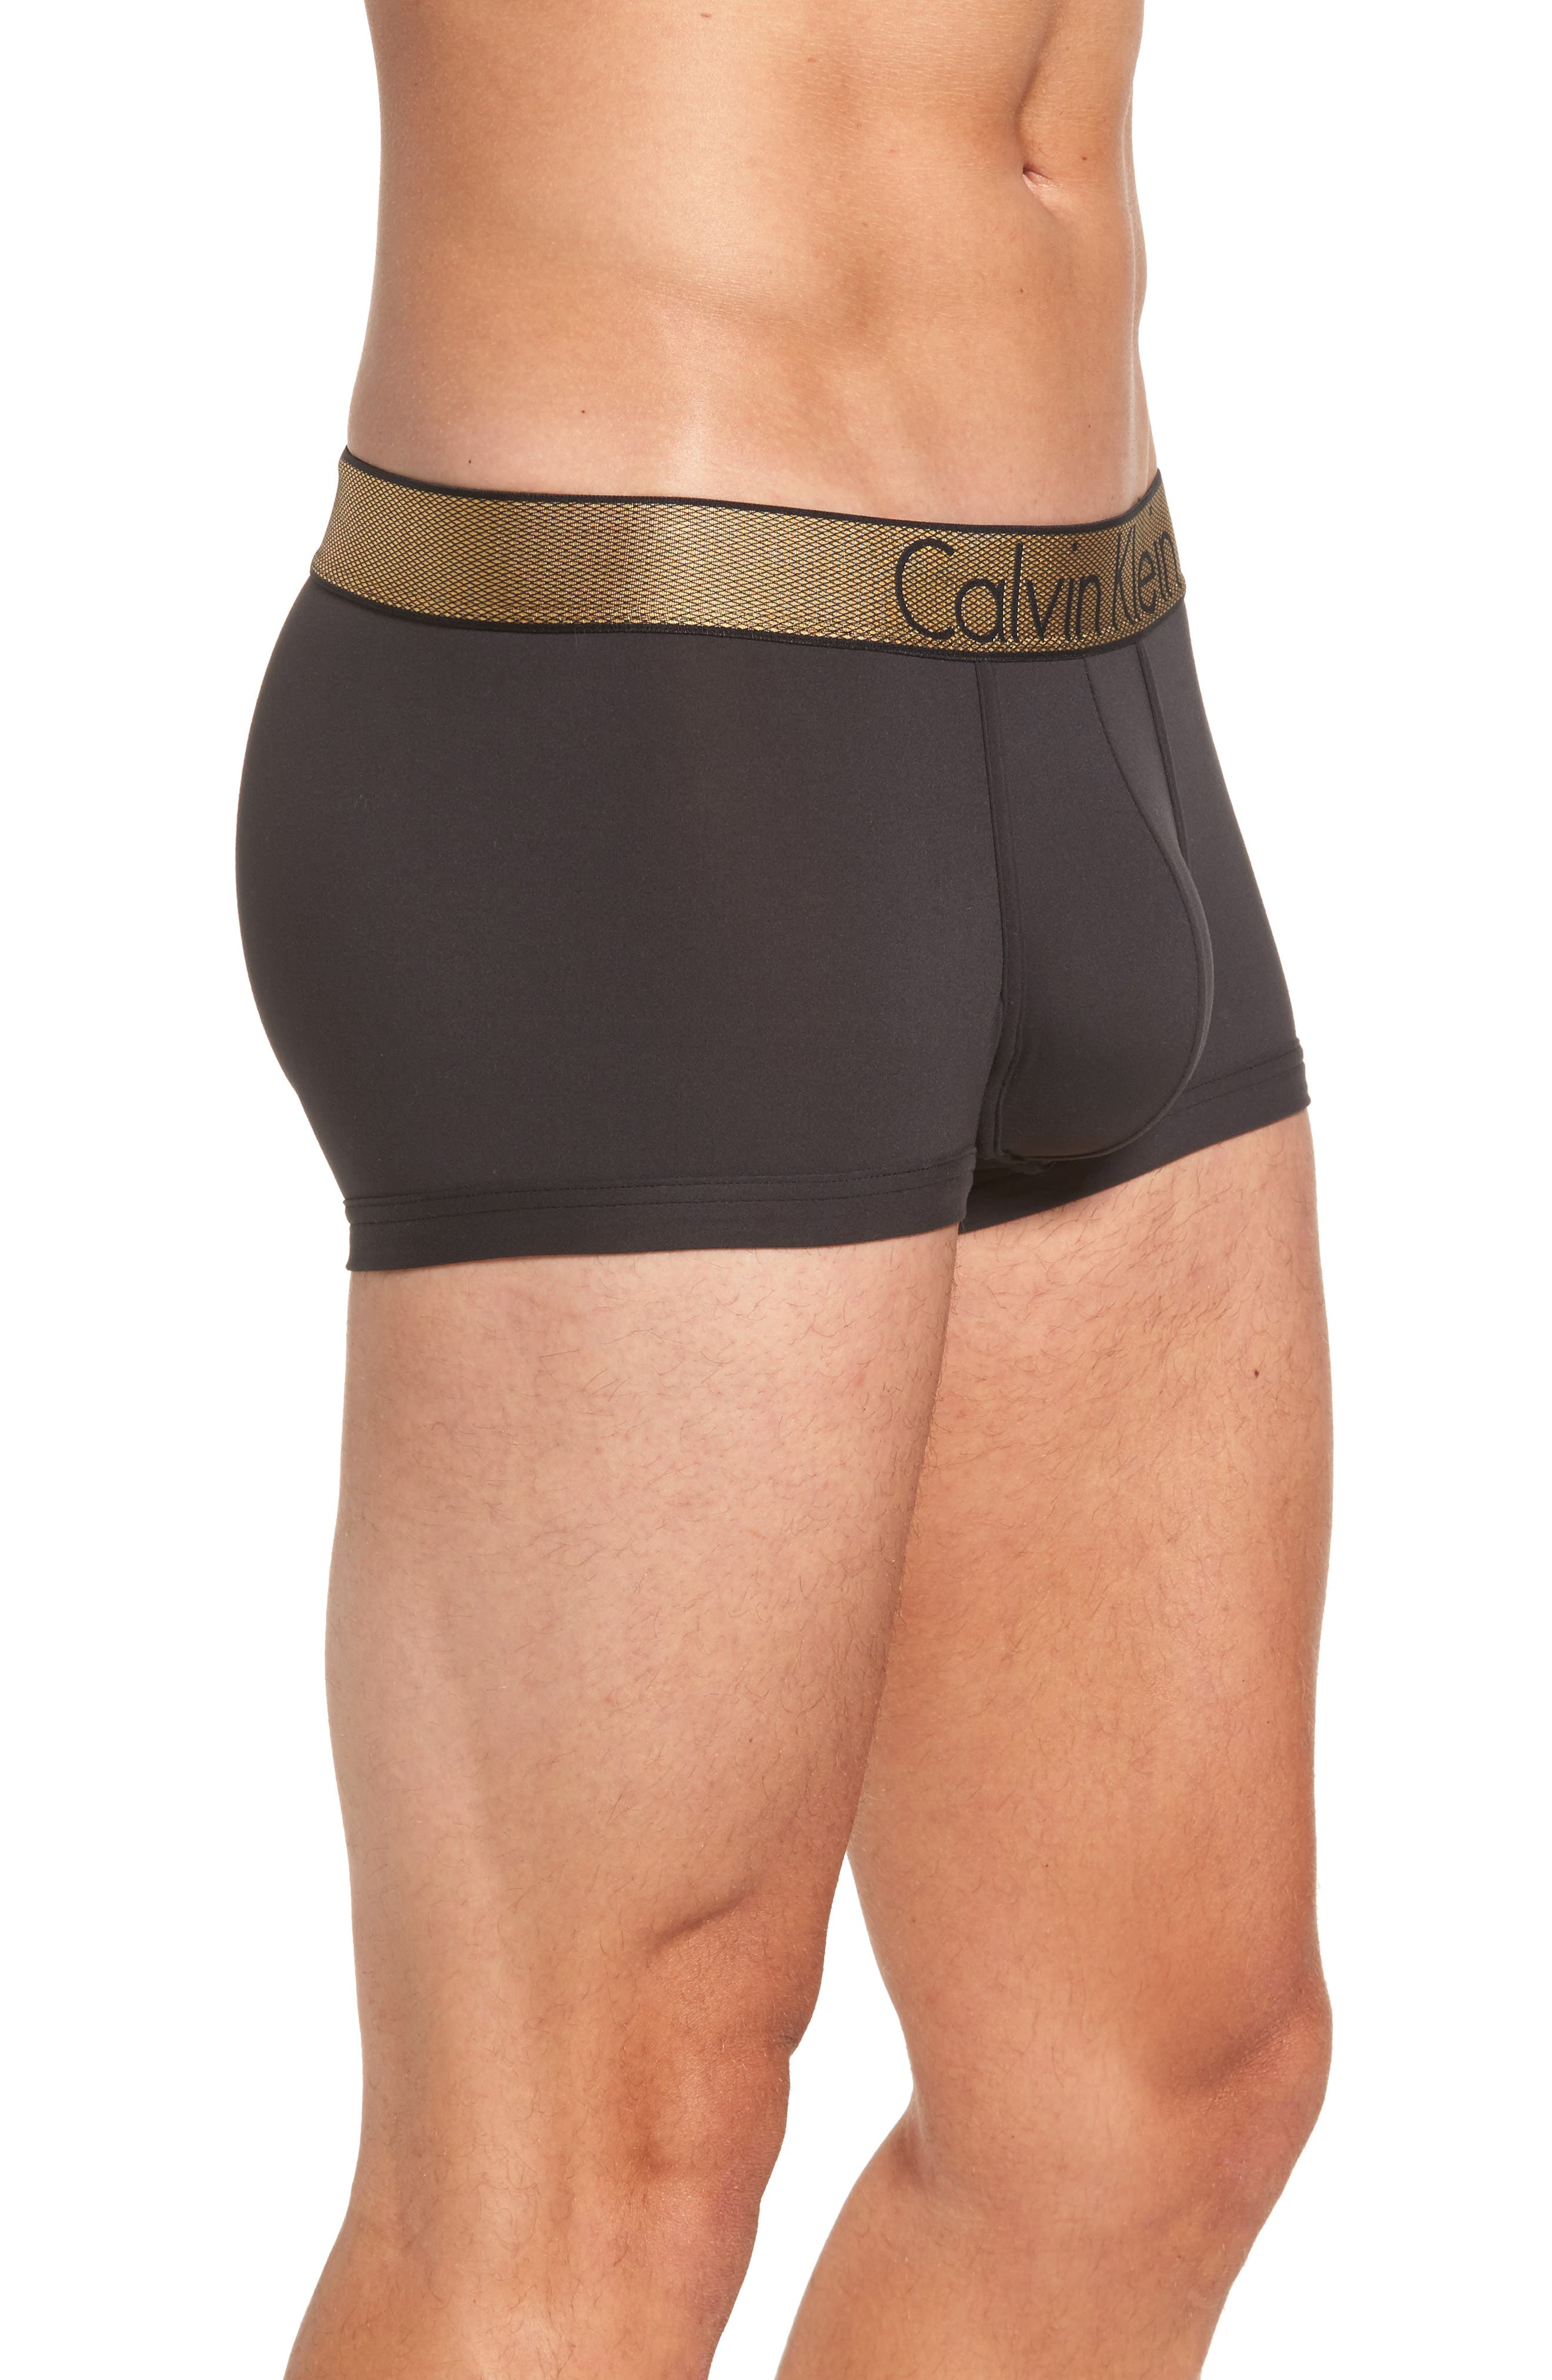 Holiday Trunks,                             Alternate thumbnail 3, color,                             Black W/ Gold Wb